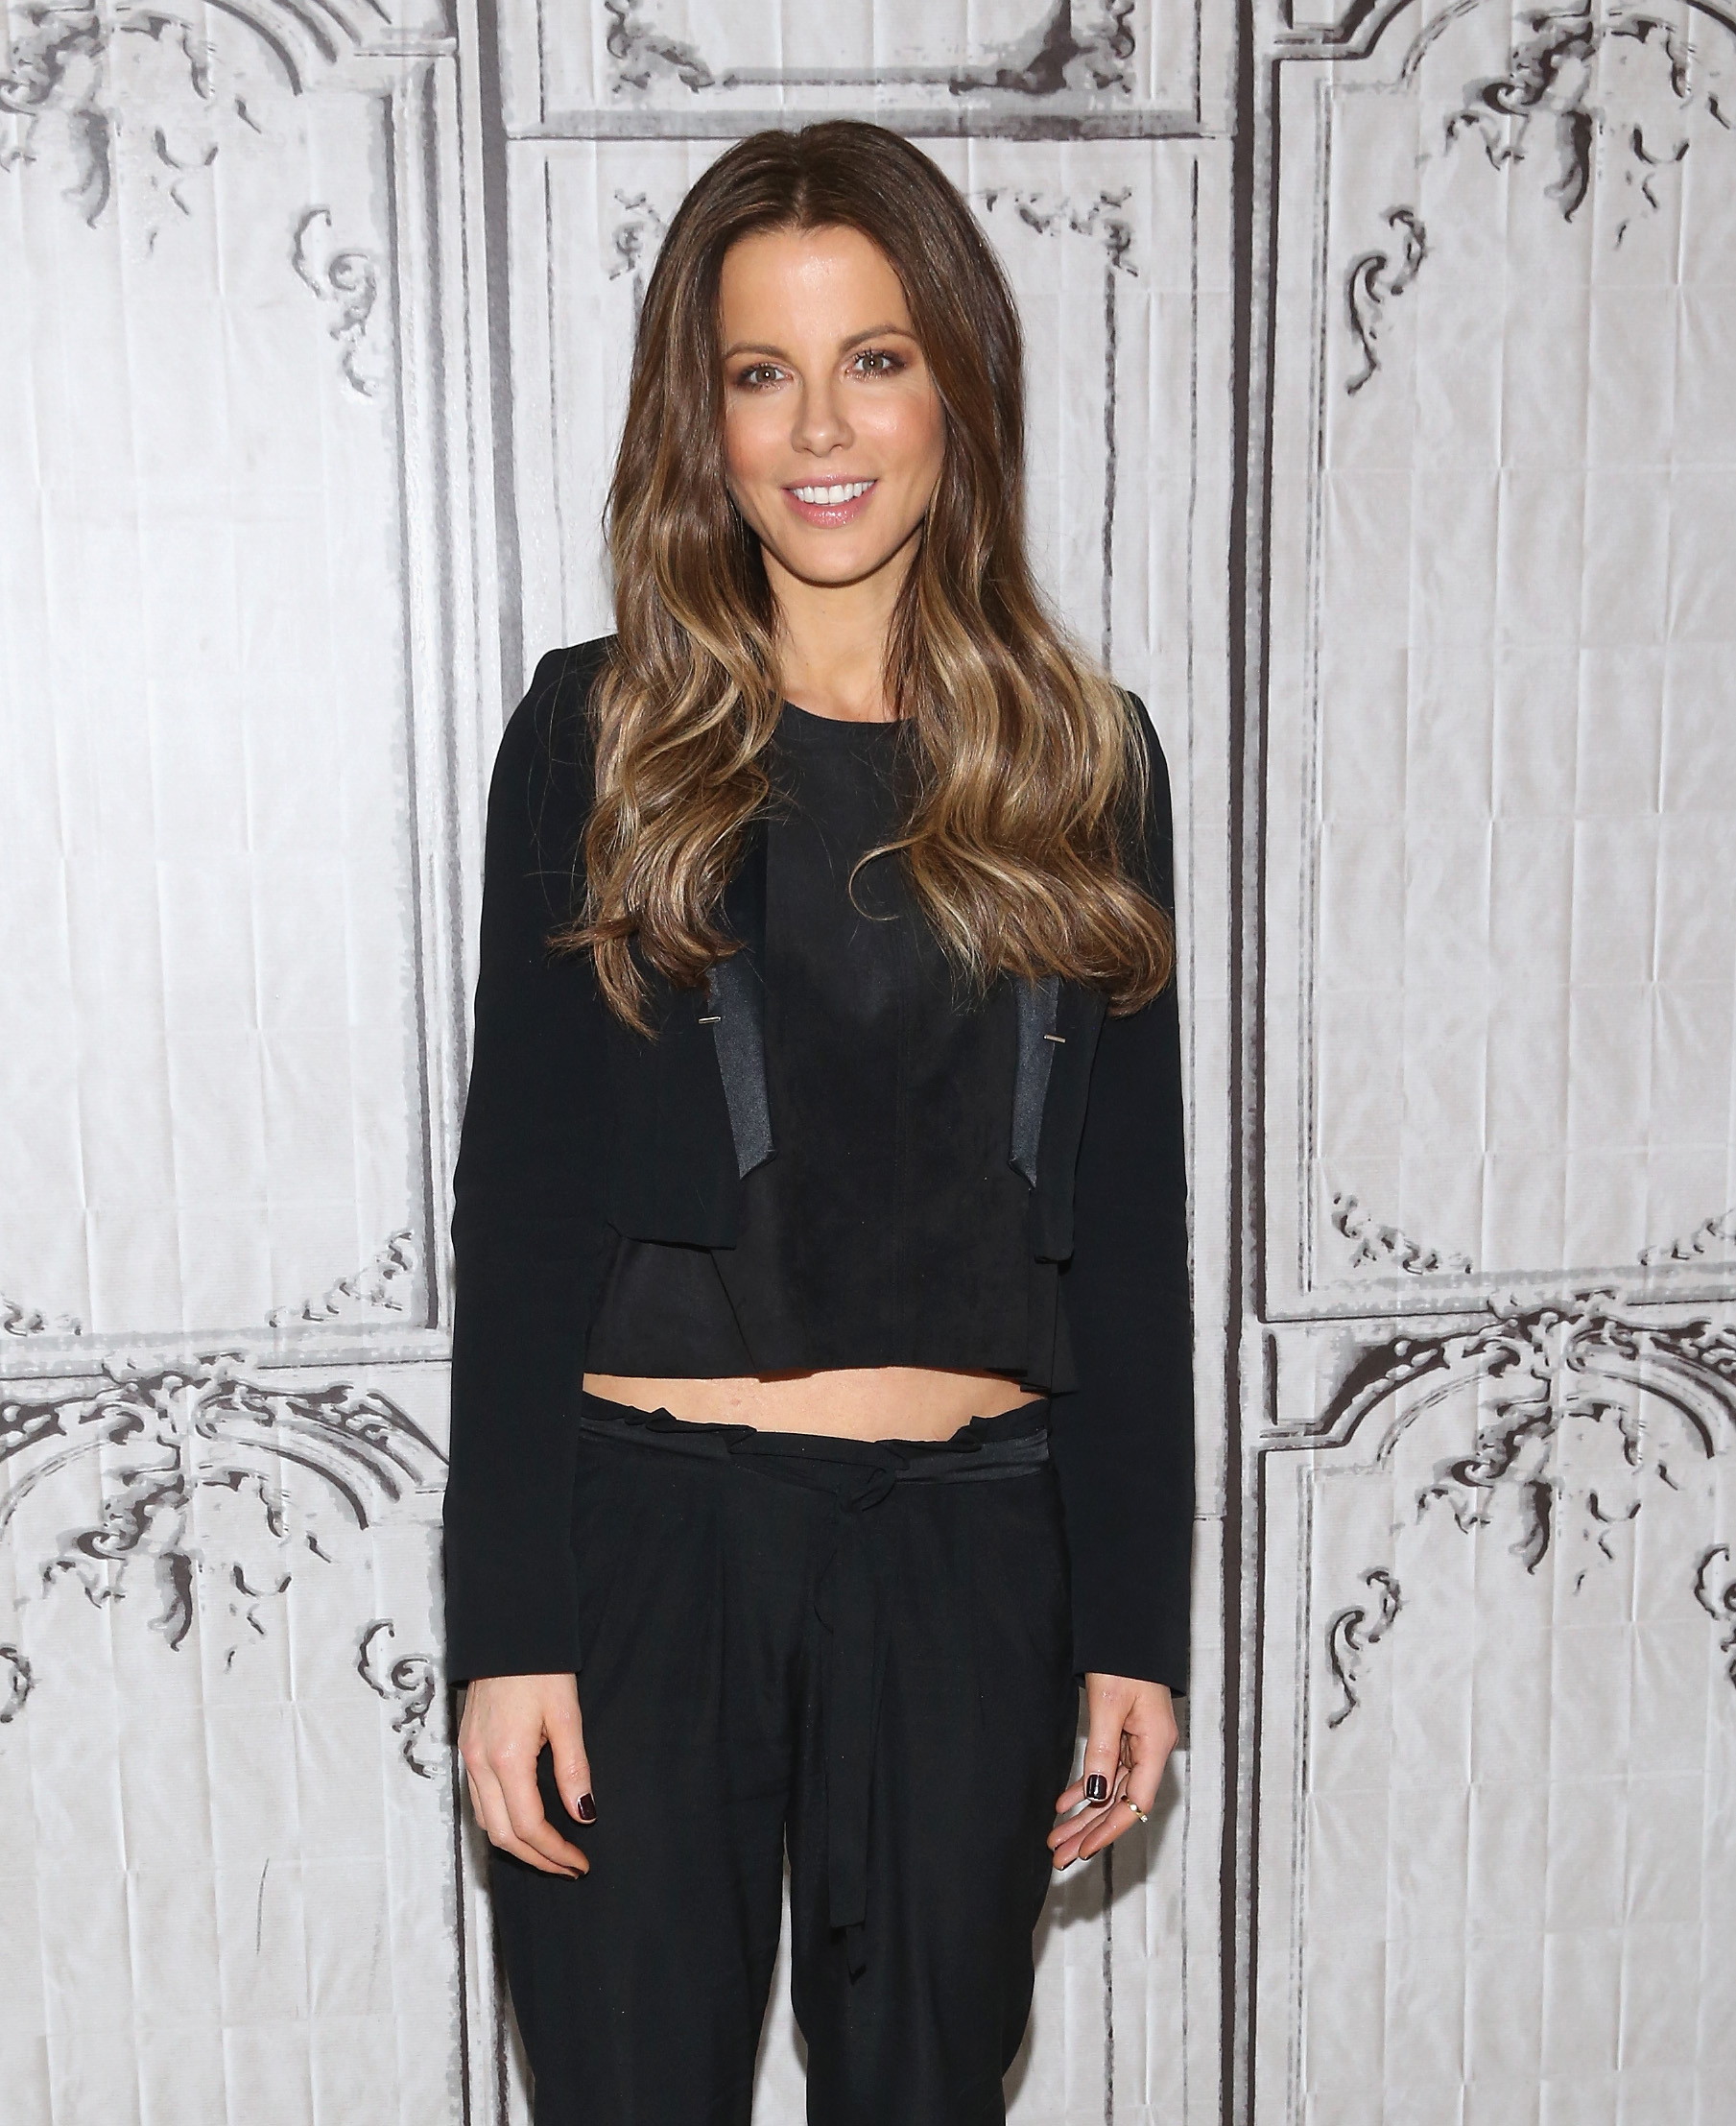 Kate Beckinsale attends the AOL Build Speaker Series for  Love & Friendship   on May 11, 2016 in New York, New York.